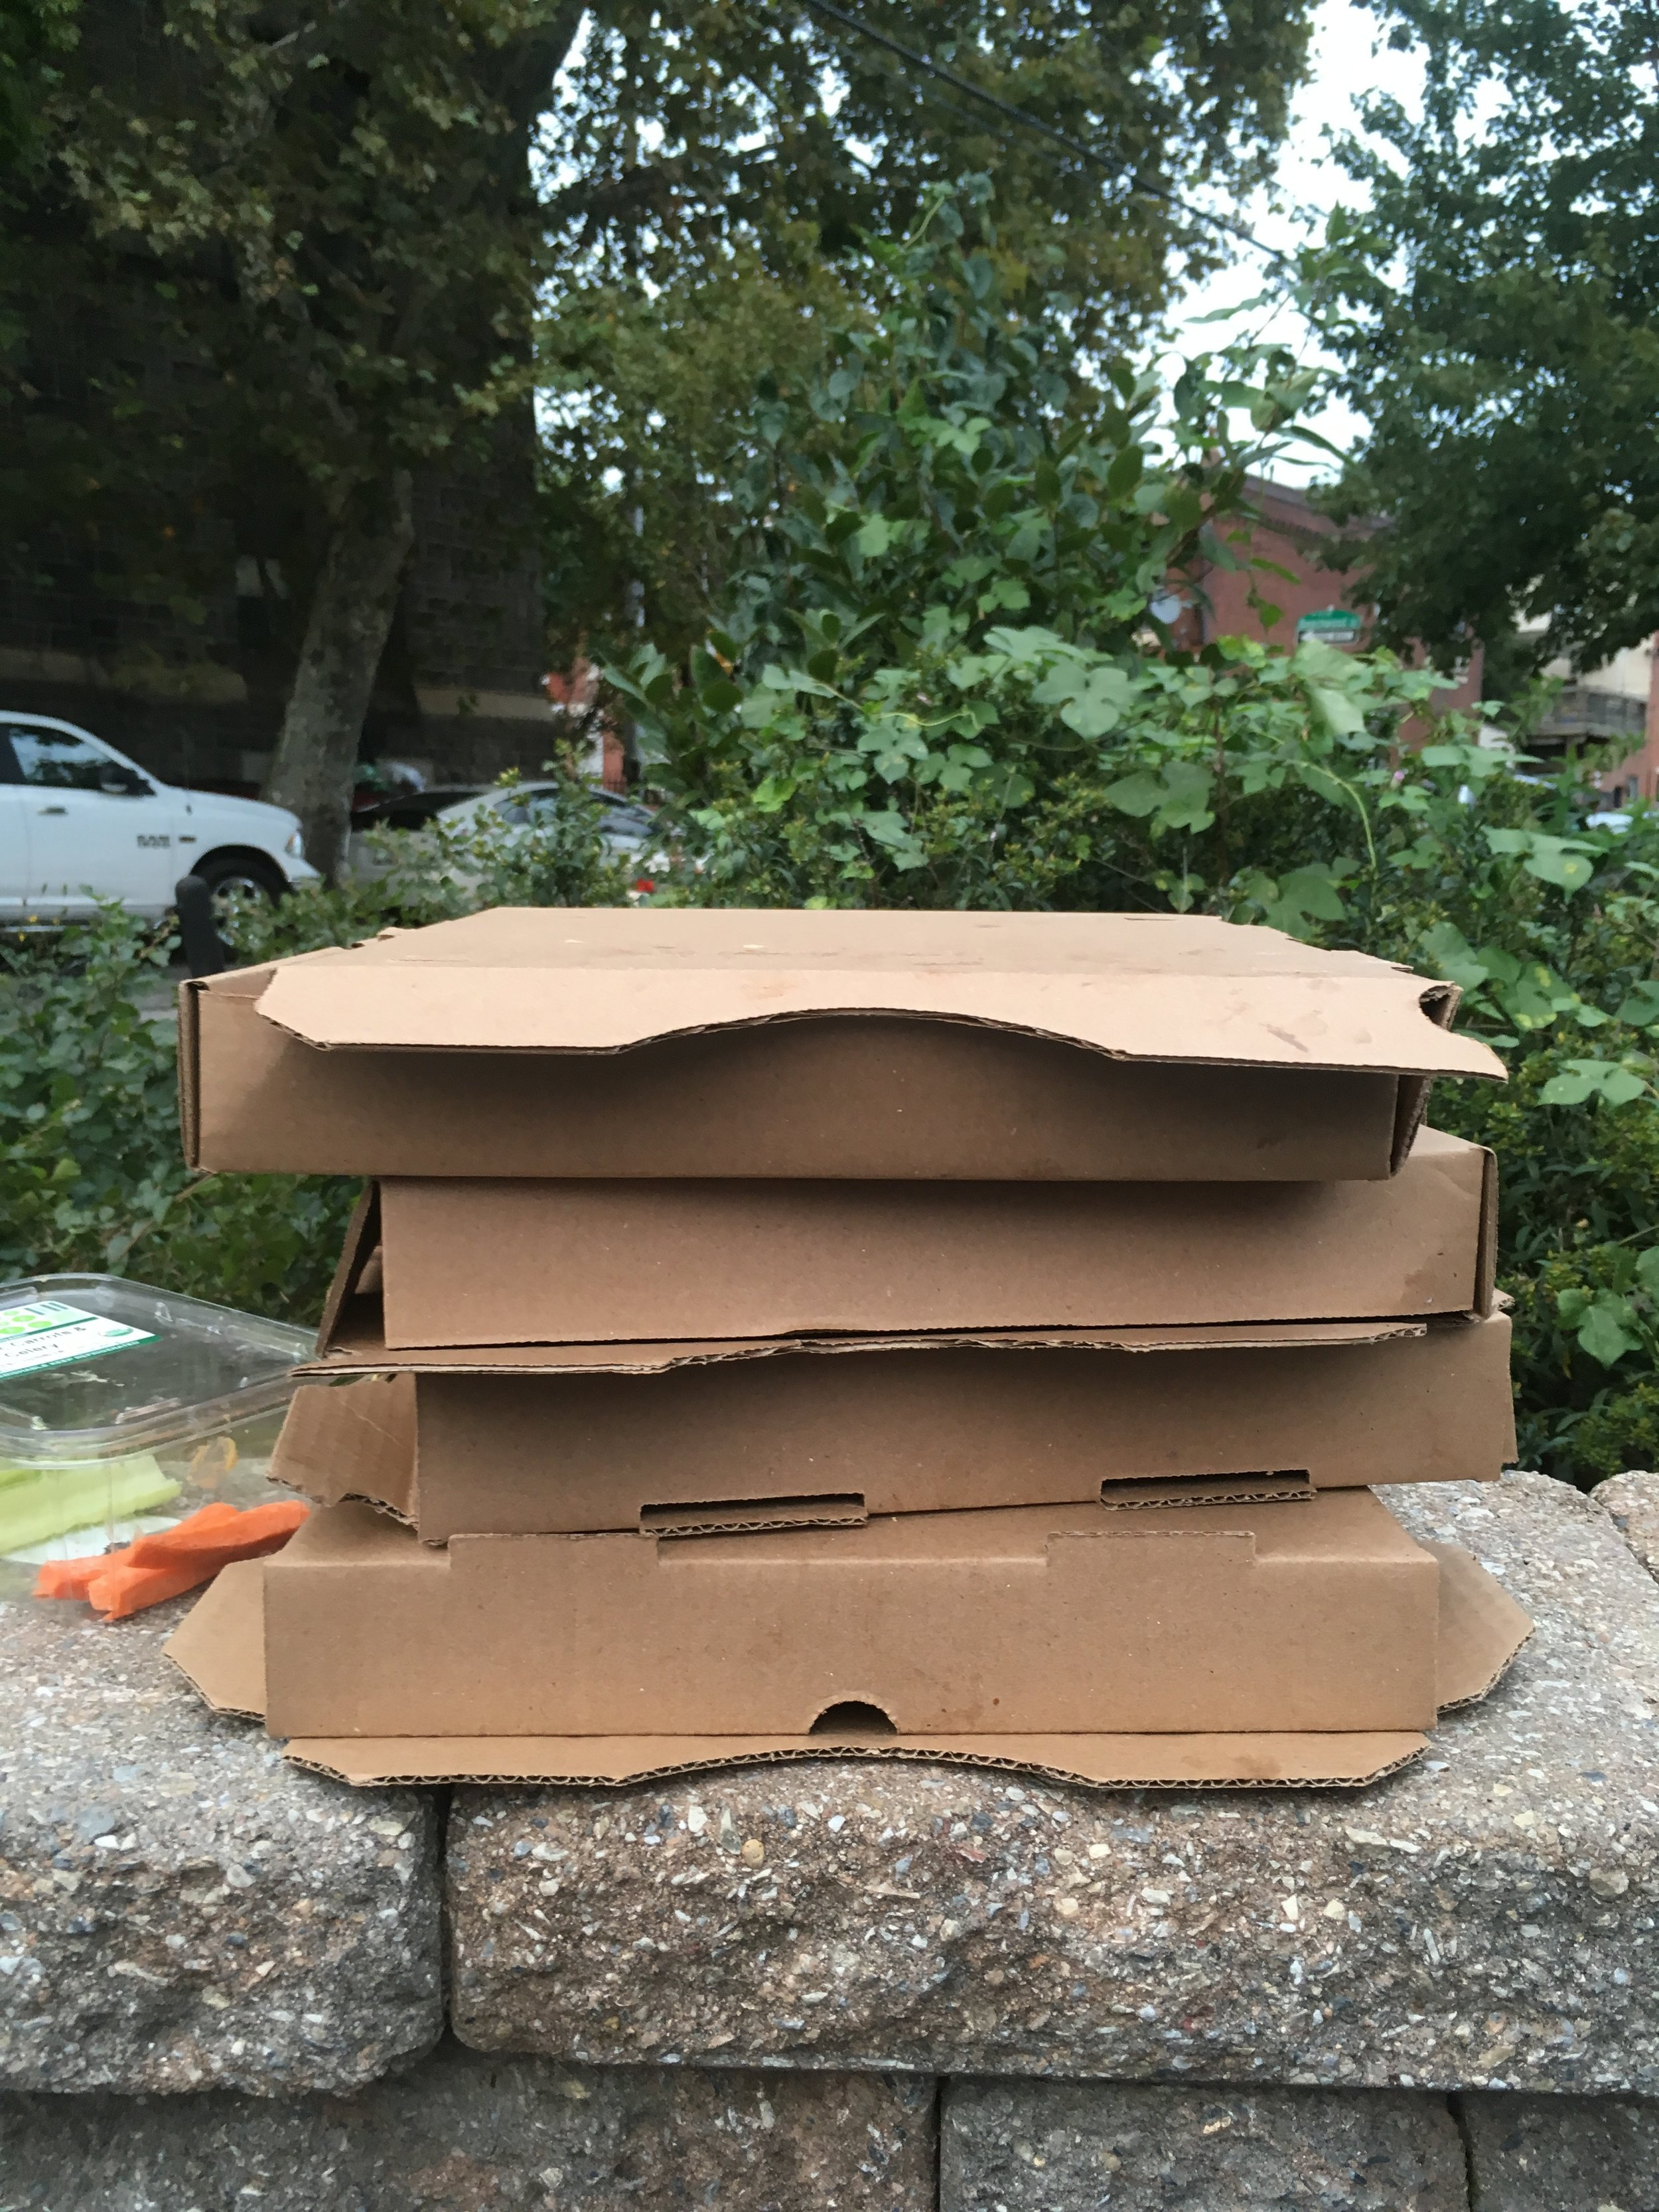 Wish I was piling up pizza boxes instead of mail. But you see those carrot sticks? That's how you know a grown up was at this pizza party.